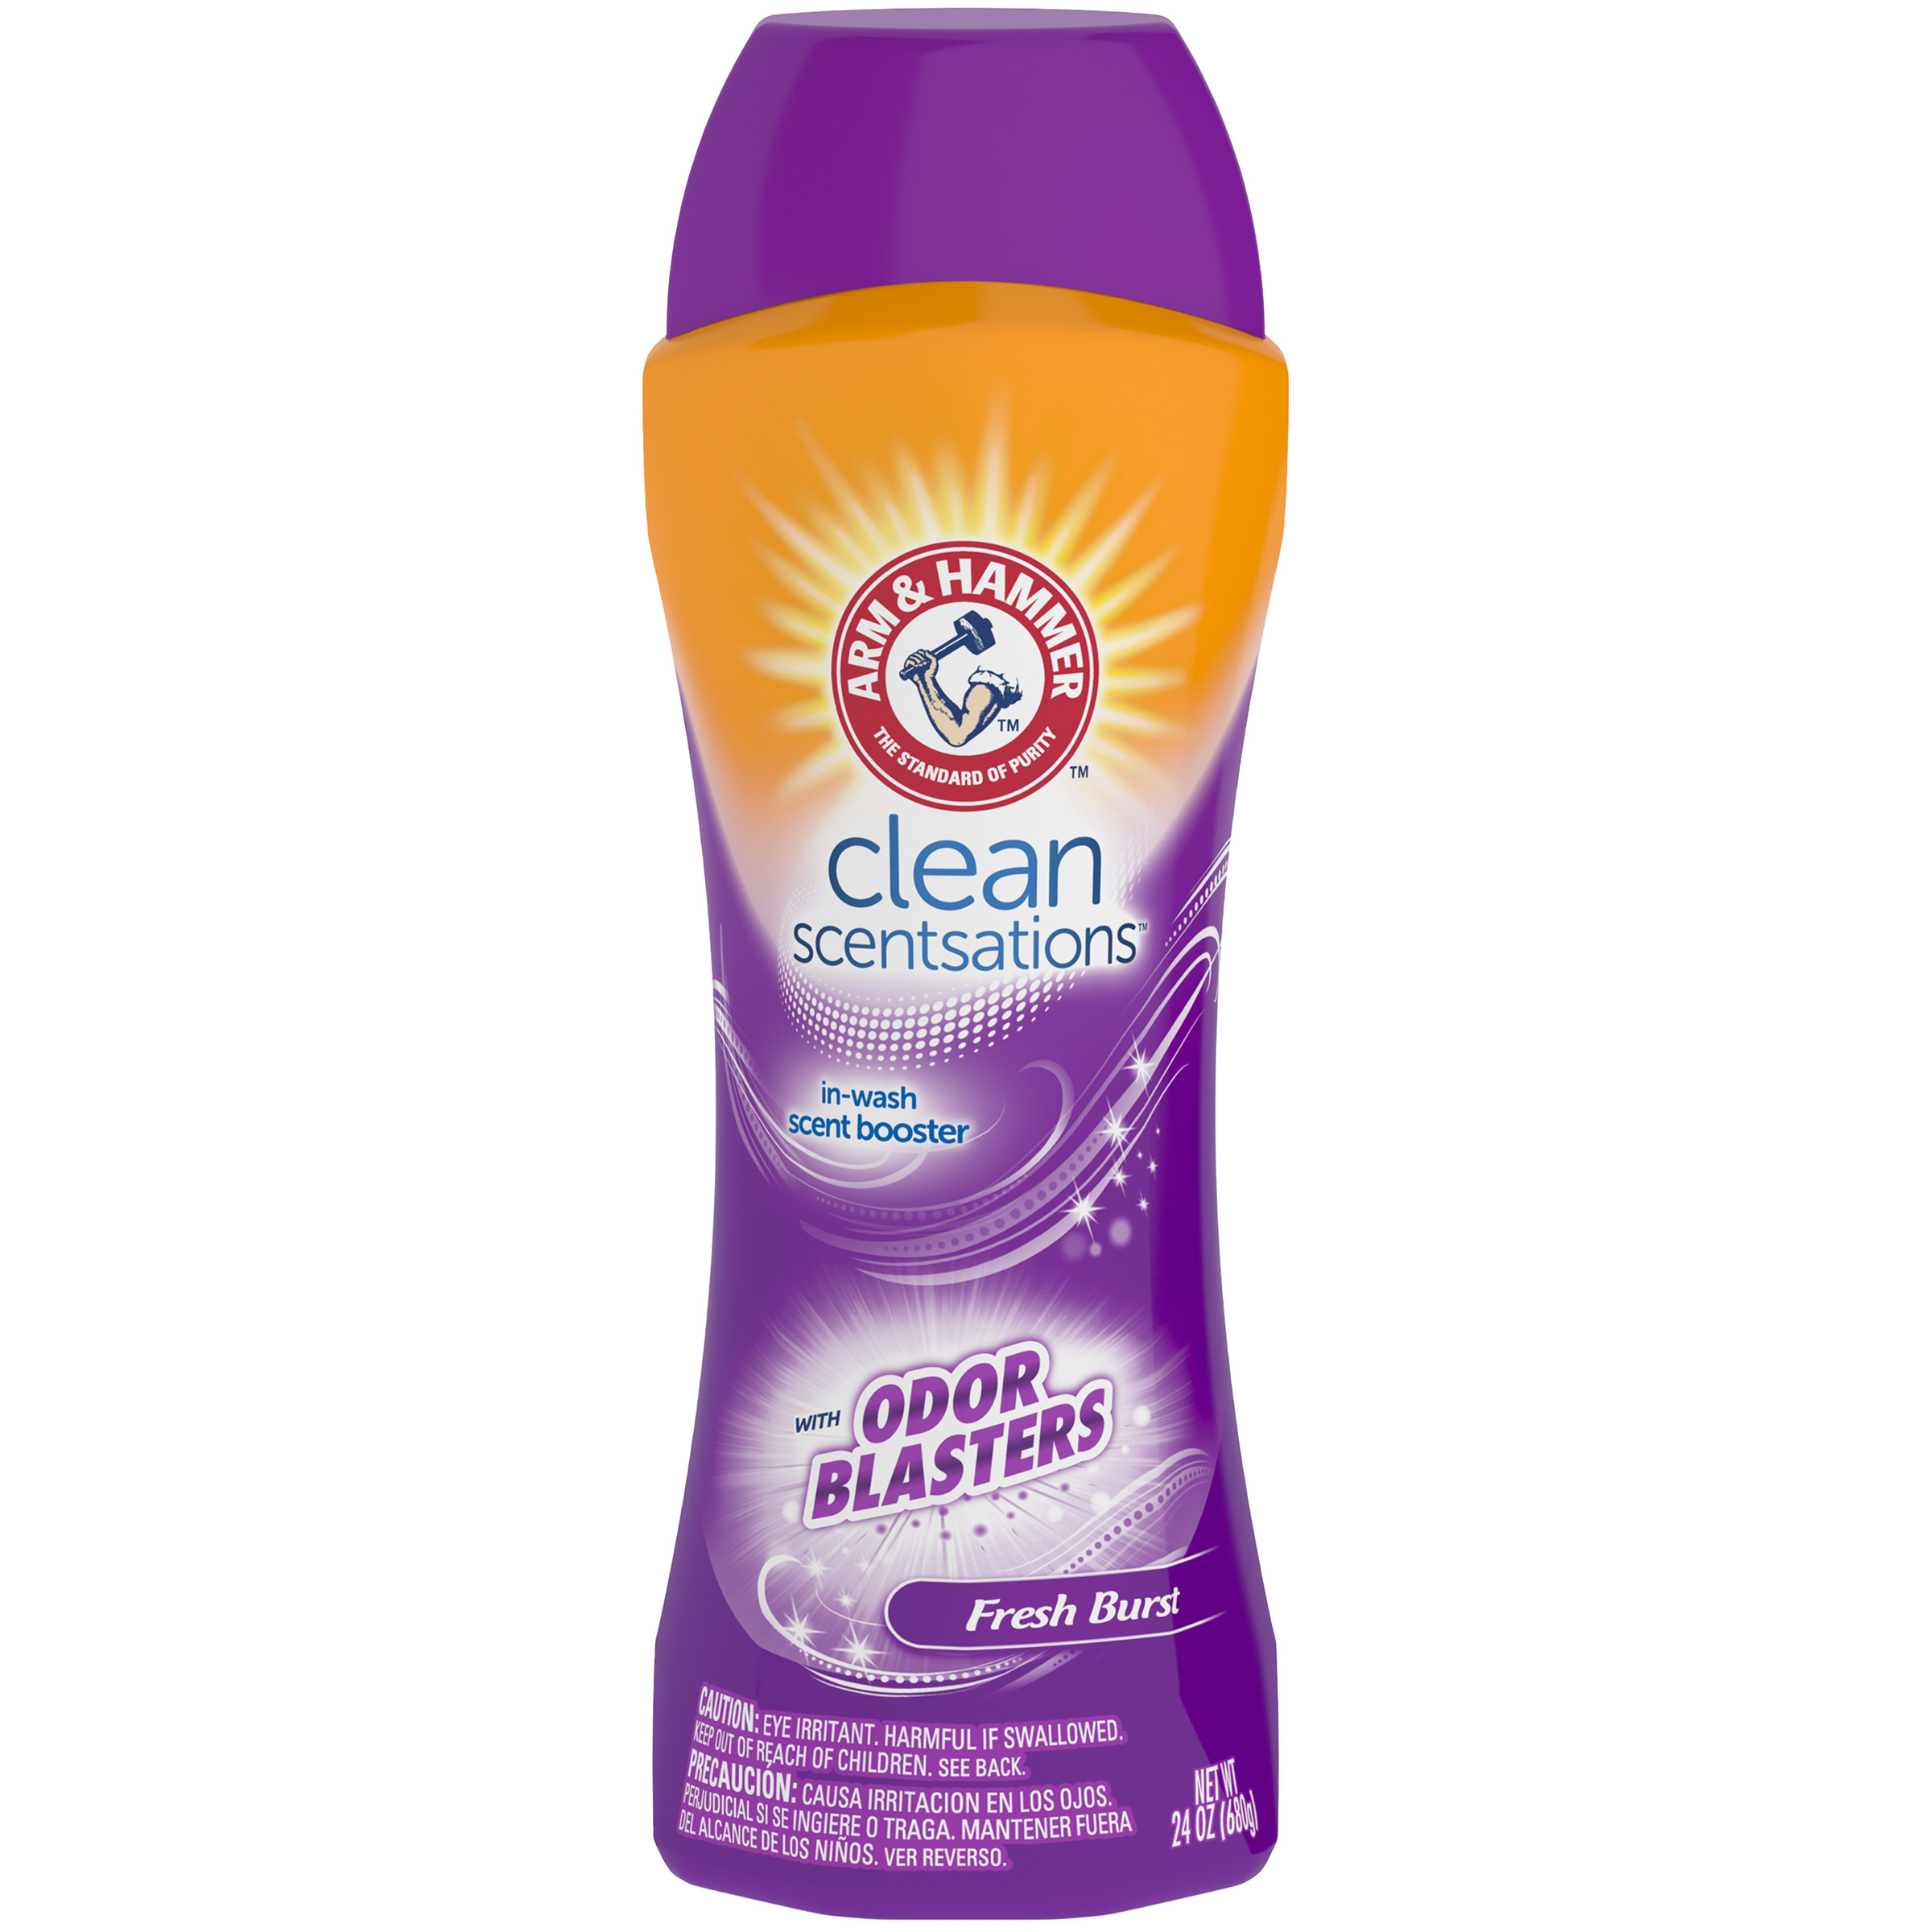 (3 pack) Arm & Hammer Clean Scentsations Odor Blasters In-Wash Scent Booster - Fresh Burst, 24 oz